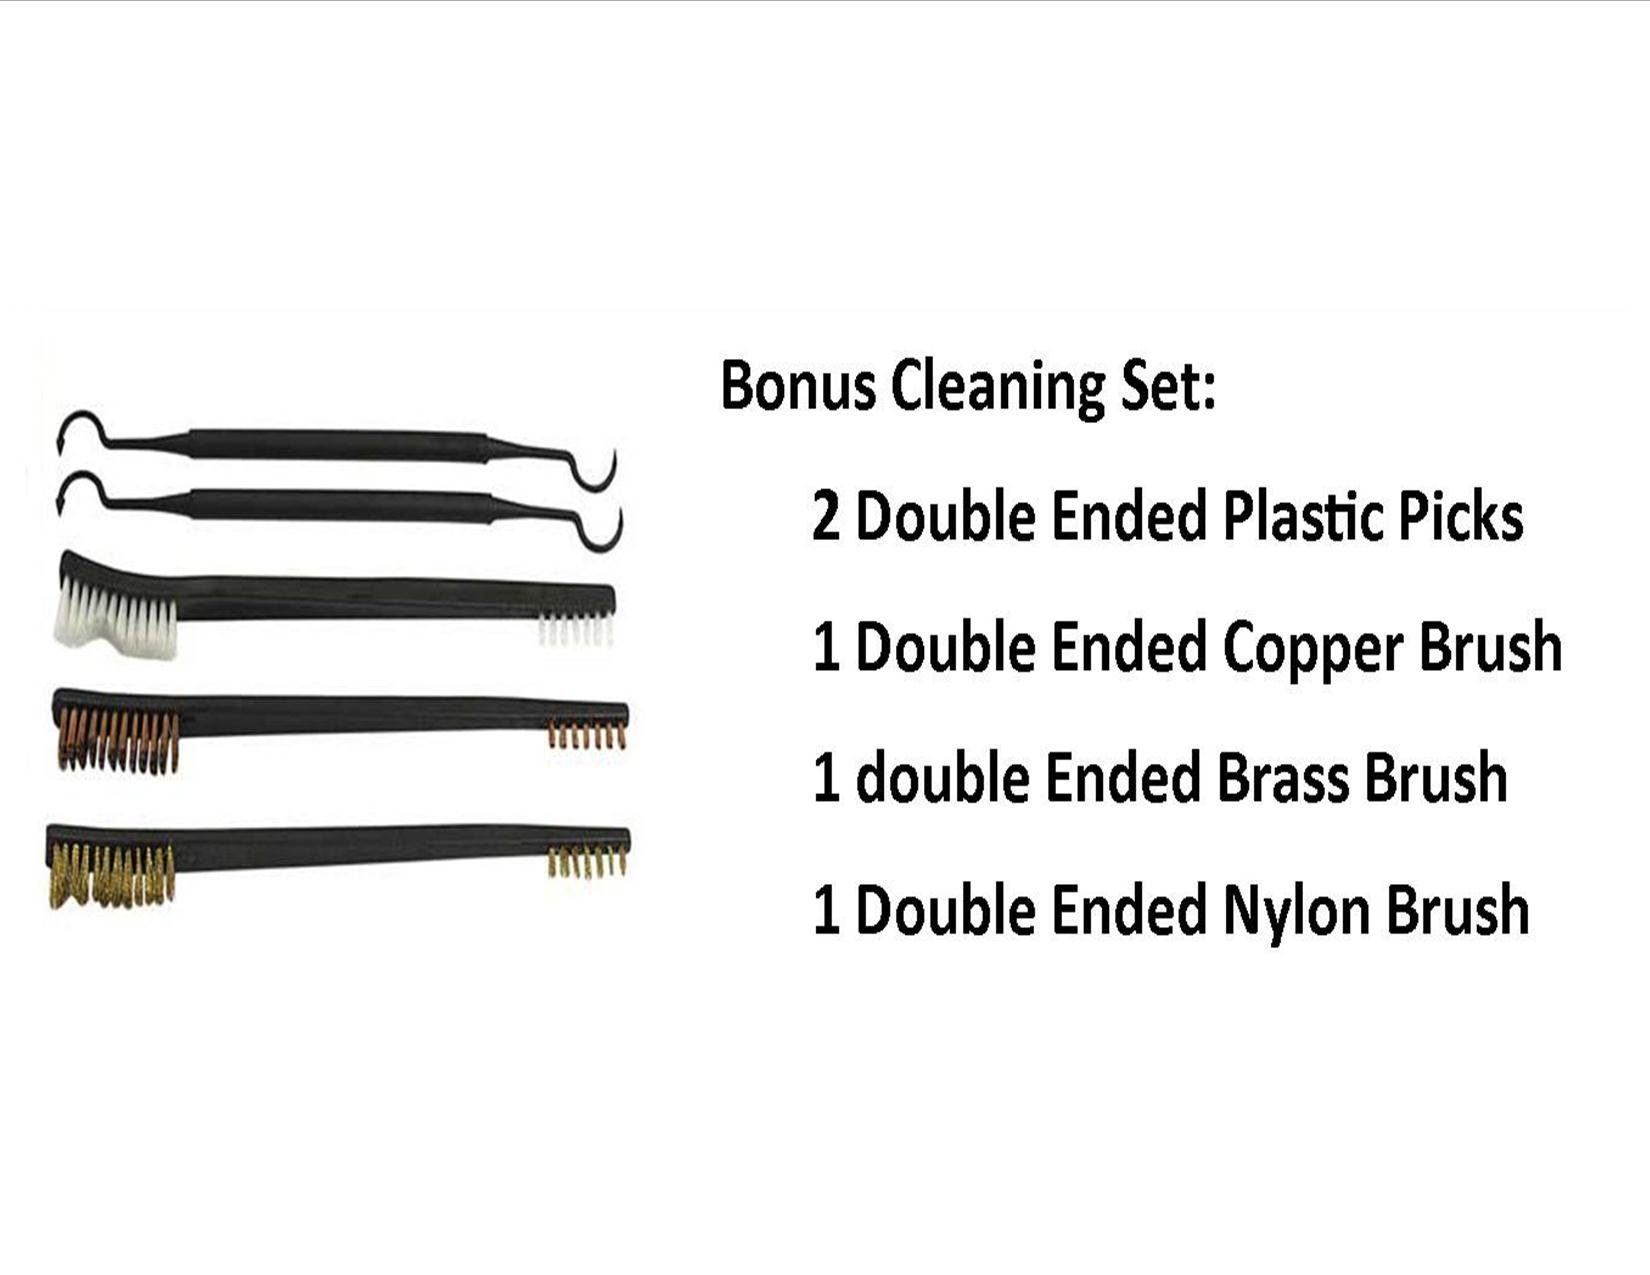 TekMat 11-Inch X 17-Inch Handgun Cleaning Mat Universal 1911 Bonus 5 oc Gun Cleaning Brush & Pick Set by EDOG (Image #2)